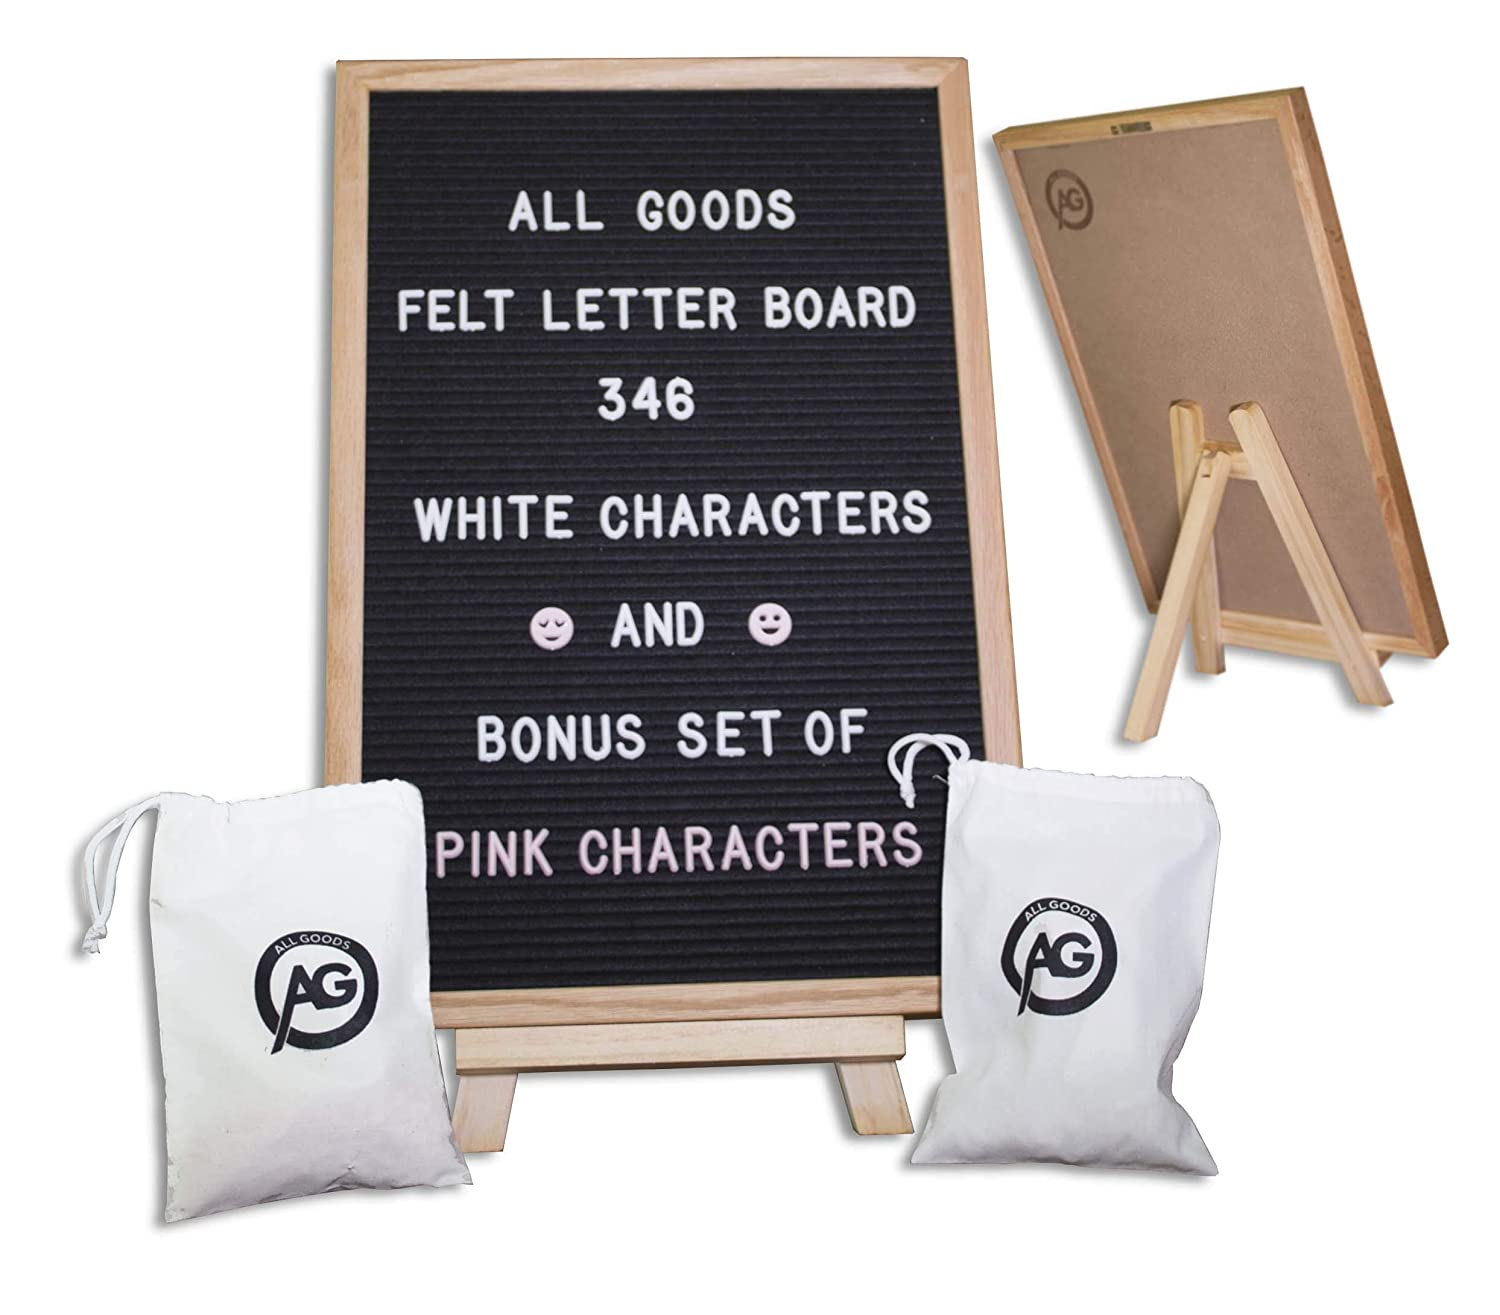 Felt Letter Board | 12x18 Inch Oak Frame & Black Felt | 346 White & 346 Pink Changeable Letters, Emojis, Bonus Drawstring Canvas Pouch, and Wood Stand All Goods